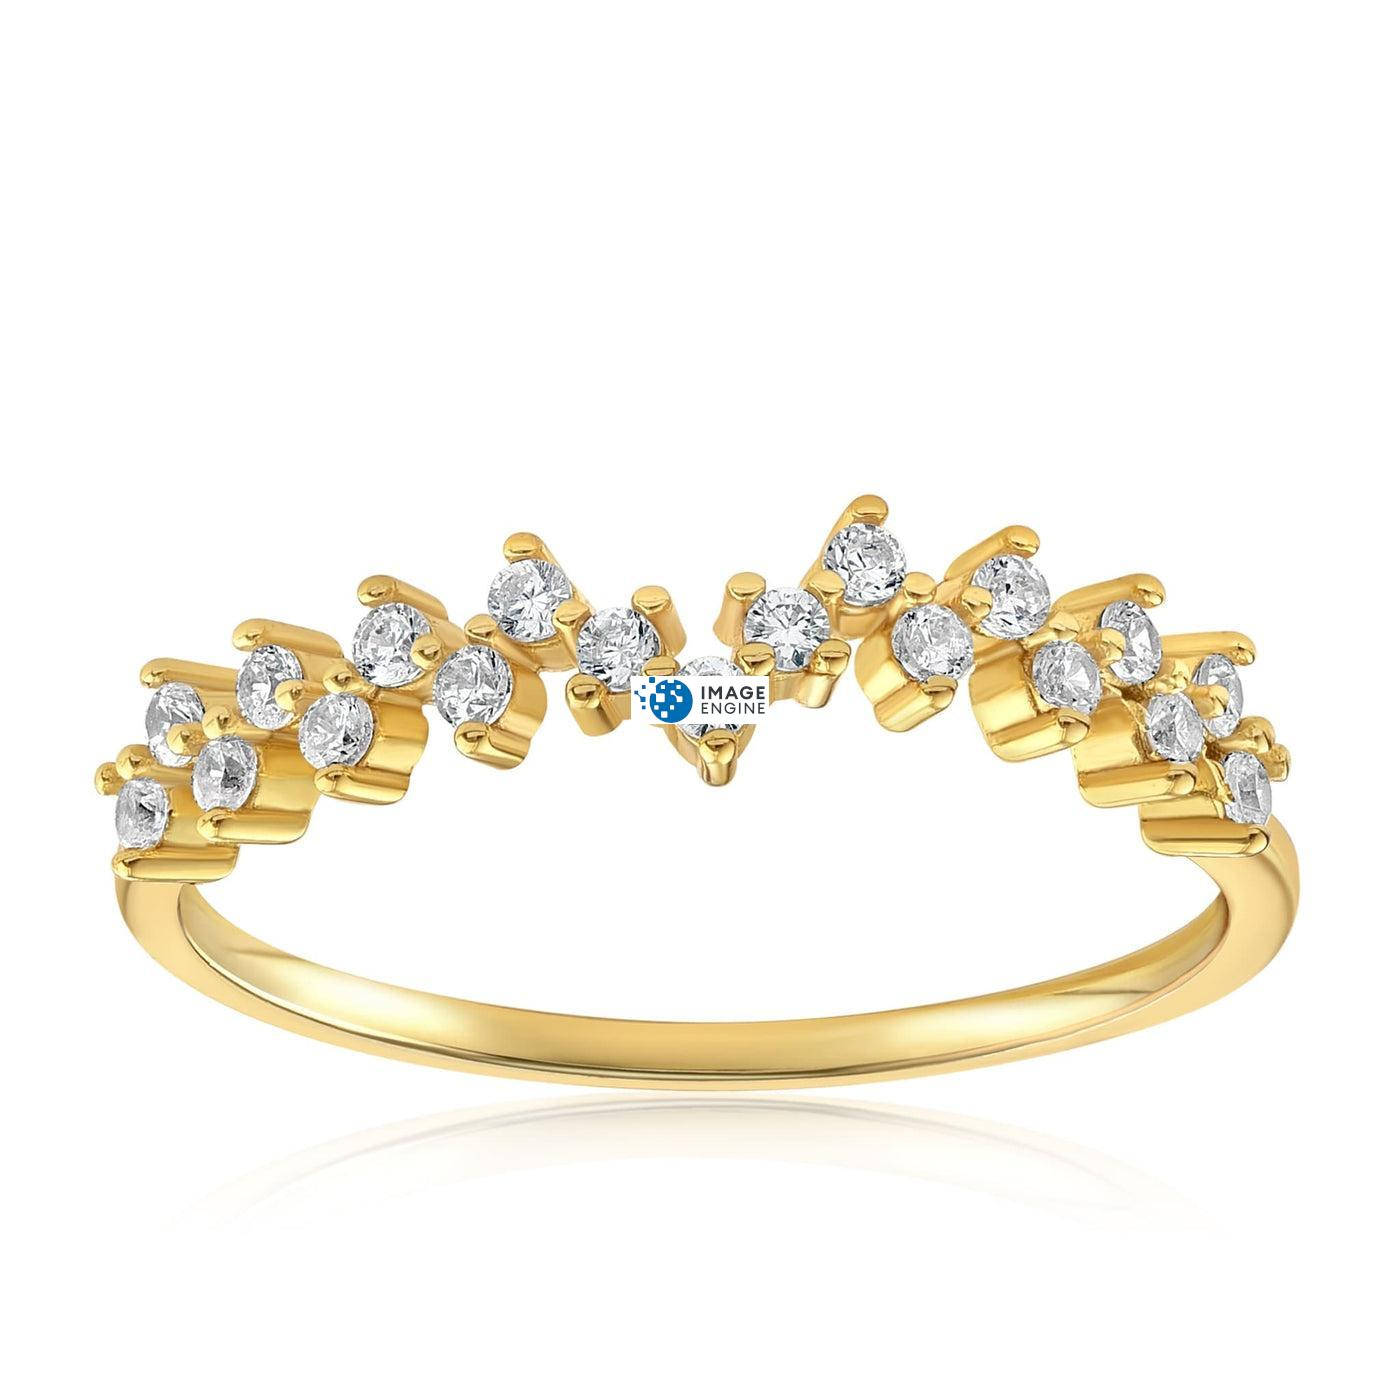 Esther Petite Cluster Ring - Front View Facing Up - 18K Yellow Gold Vermeil